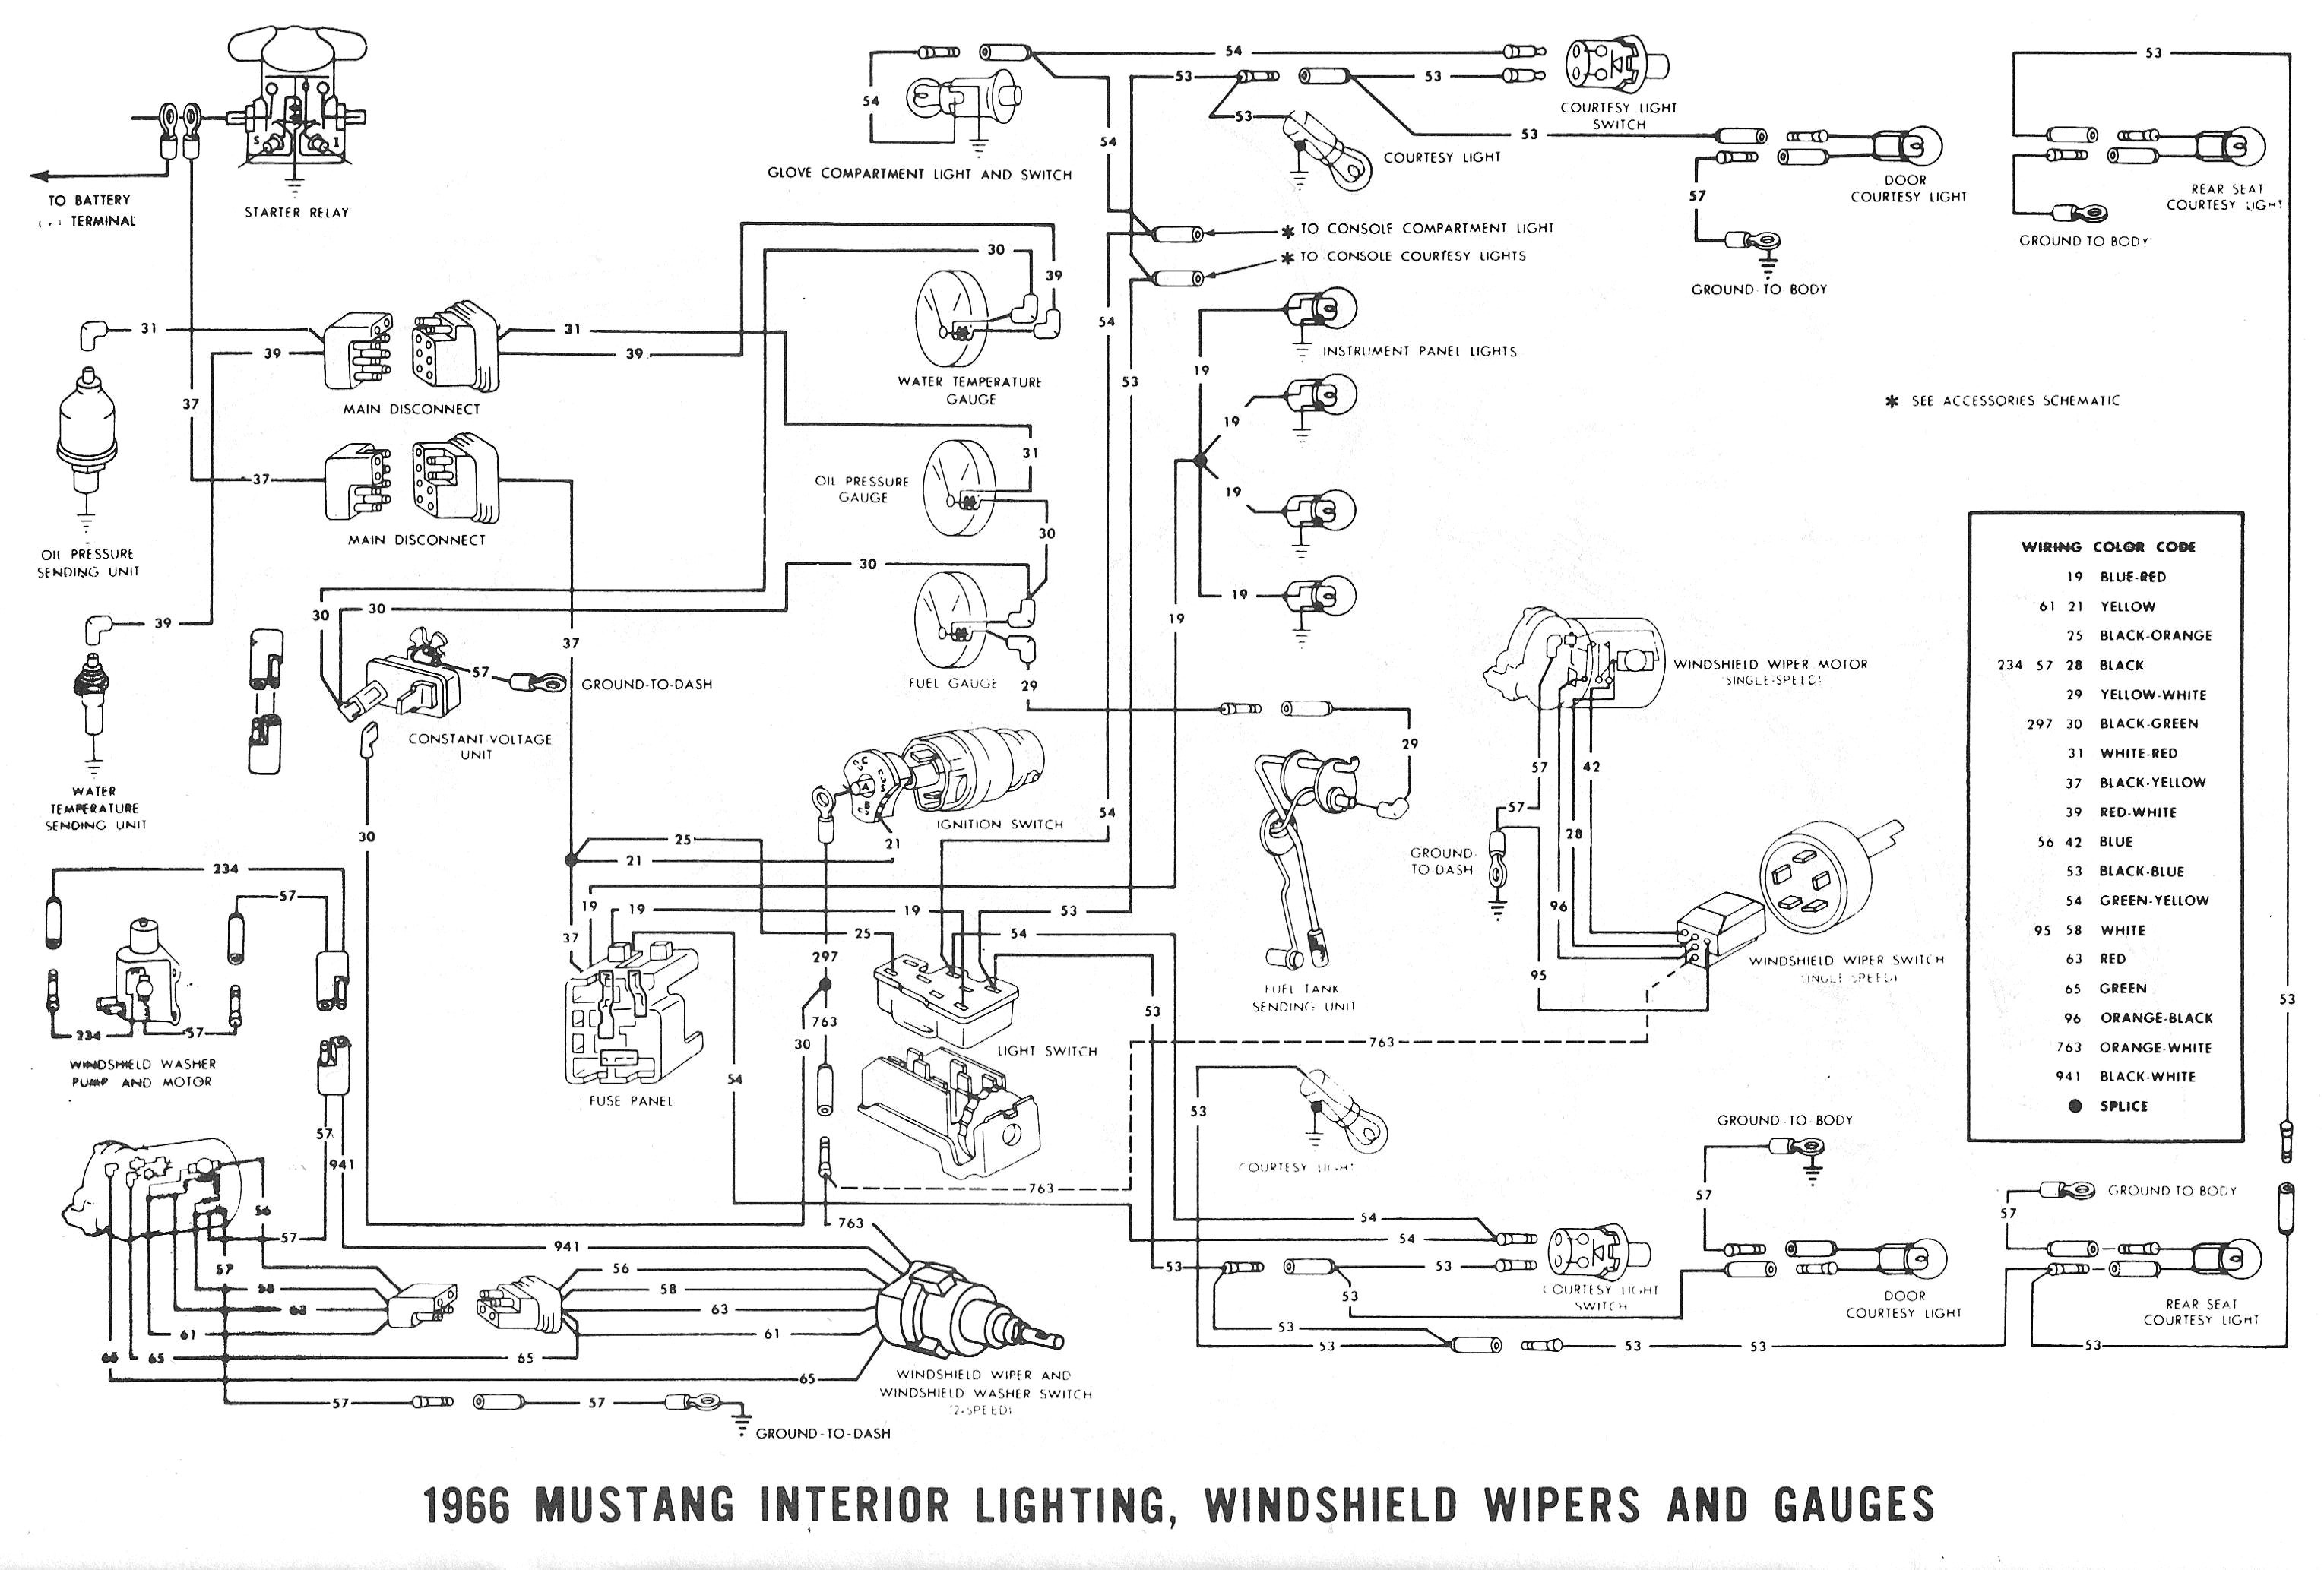 98E5C 1987 Ford Alternator Wiring | Digital Resources on ford one wire alternator diagram, ford alternator wiring harness, ford truck alternator diagram, ford alternator parts diagram, ford external voltage regulator diagram, 1968 mustang turn signal diagram, mustang wiring harness diagram, 1973 mustang electrical diagram, 1970 mustang instrument cluster diagram, basic ford solenoid wiring diagram, 1973 ford mustang wiring diagram, 1968 ford mustang wiring diagram, ford 3 wire alternator diagram, ford 1g alternator wiring, ford mustang custom sub box, ford 302 alternator wiring, 1998 chevy blazer wiring diagram, 1966 ford mustang wiring diagram, ford headlight wiring diagram, ford mustang solenoid wiring,